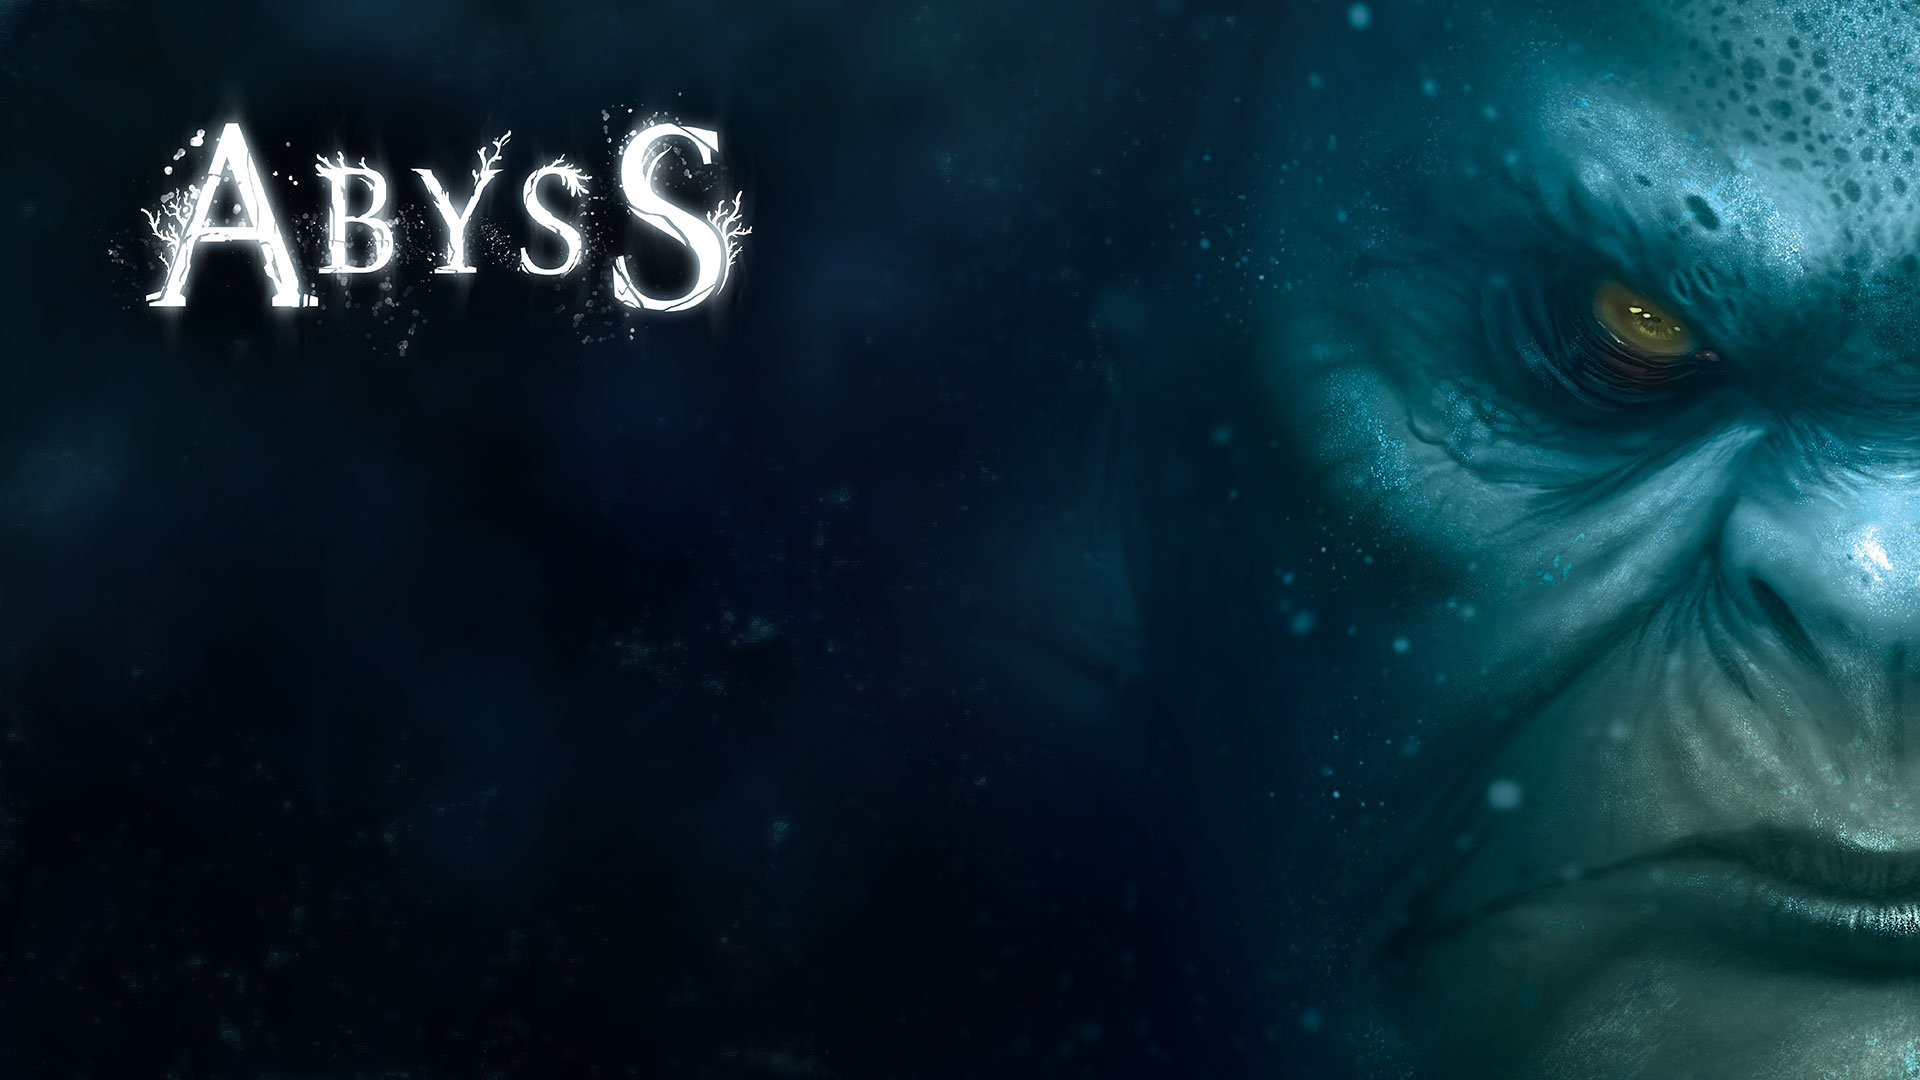 Abyss Bombyx